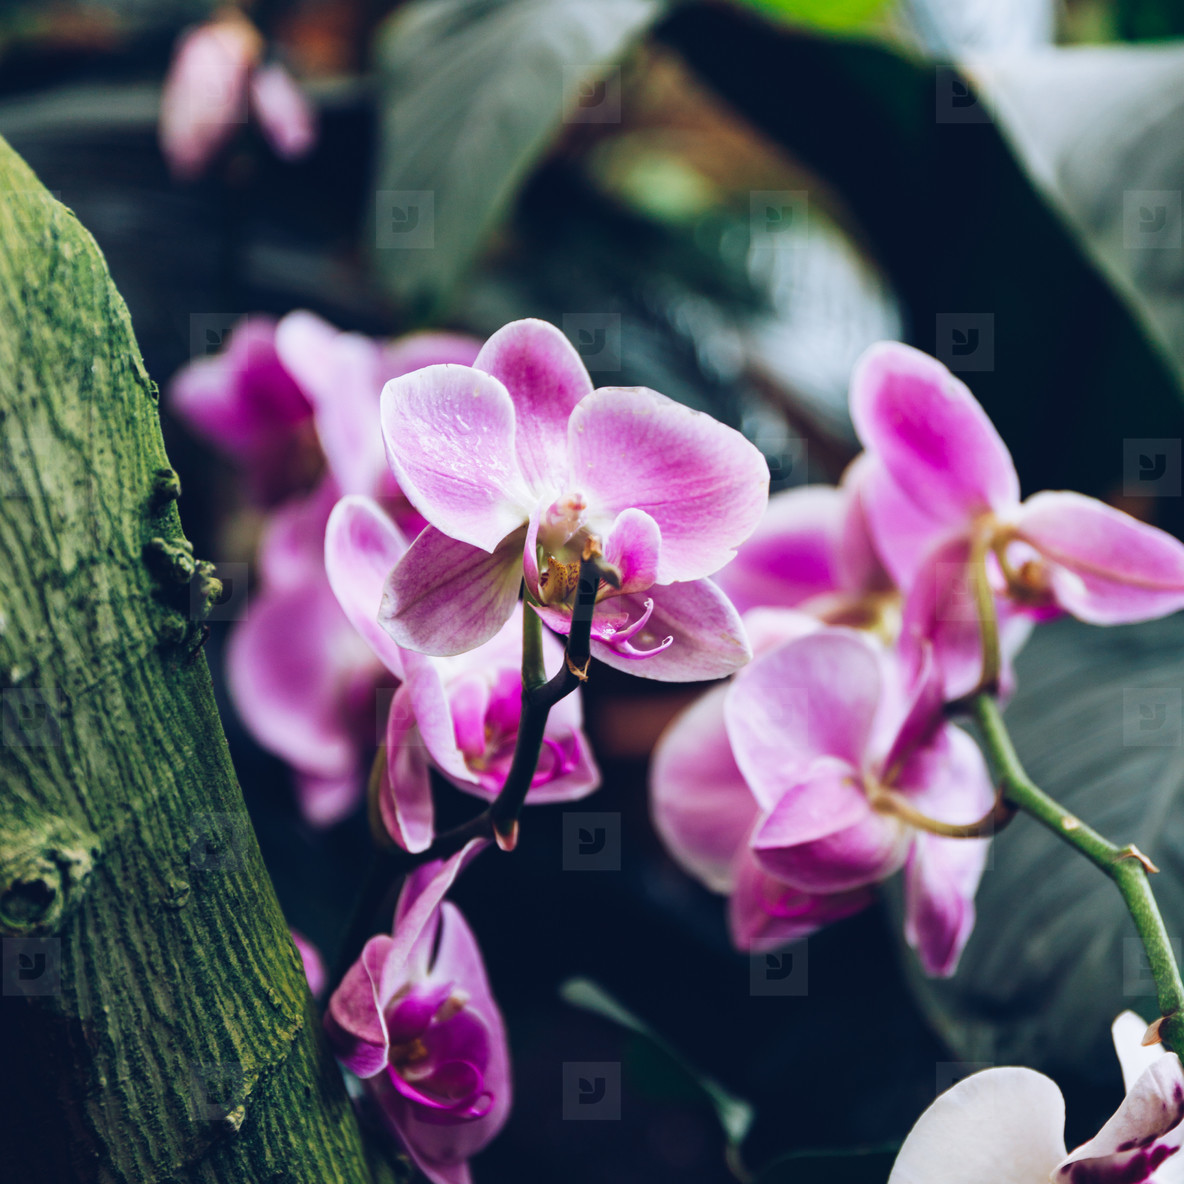 Macro photo of a pink orchid in a greenhouse